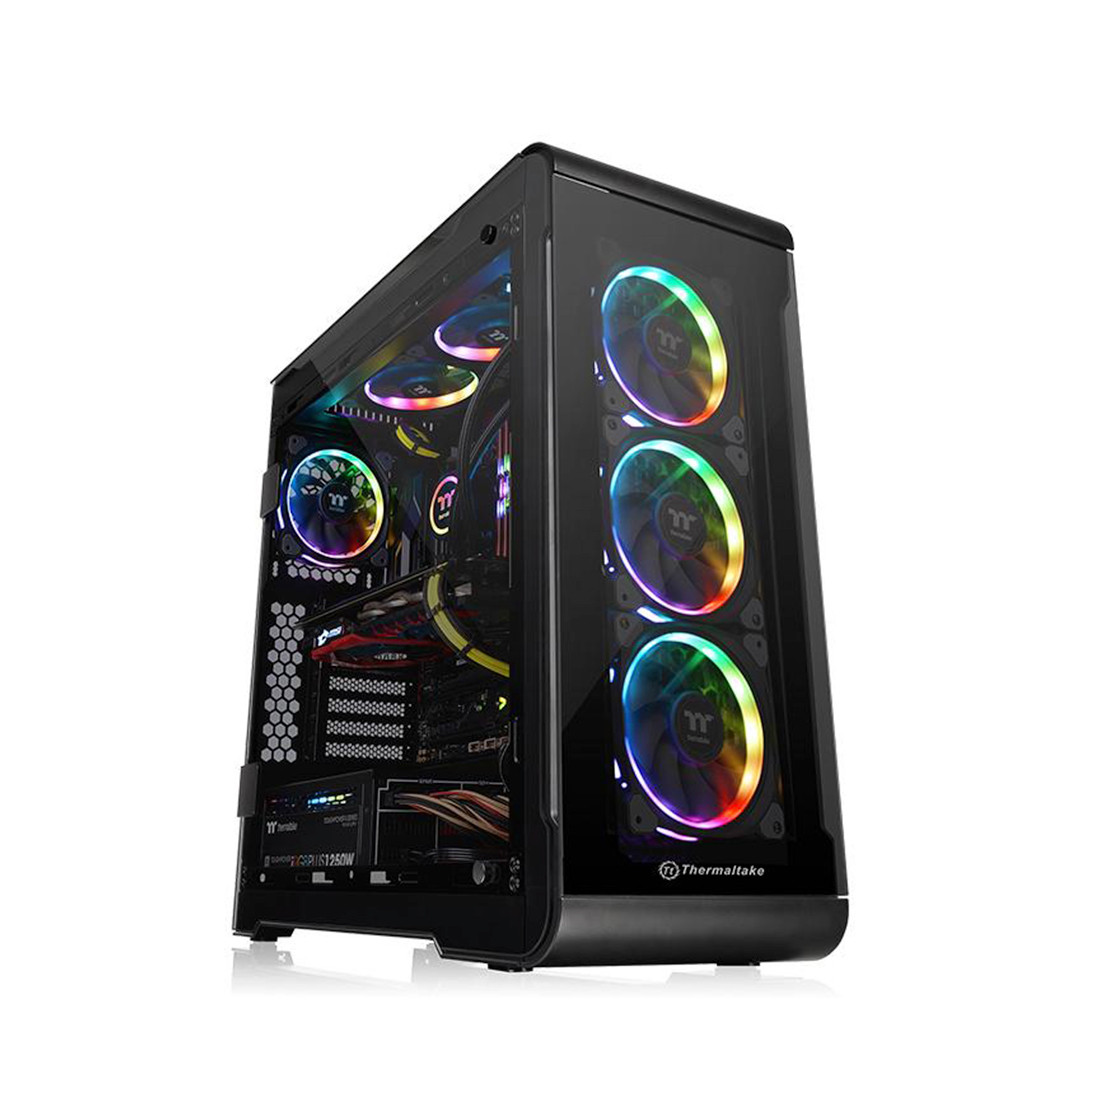 Кейс, Thermaltake, View 32 TG RGB (CA-1J2-00M1WN-00), ATX/Micro ATX, USB2*3.0, HD-Audio+Mic, Контроллер , Кулер 12см, Кулер 12см LED, Без Б/П, Чёрный